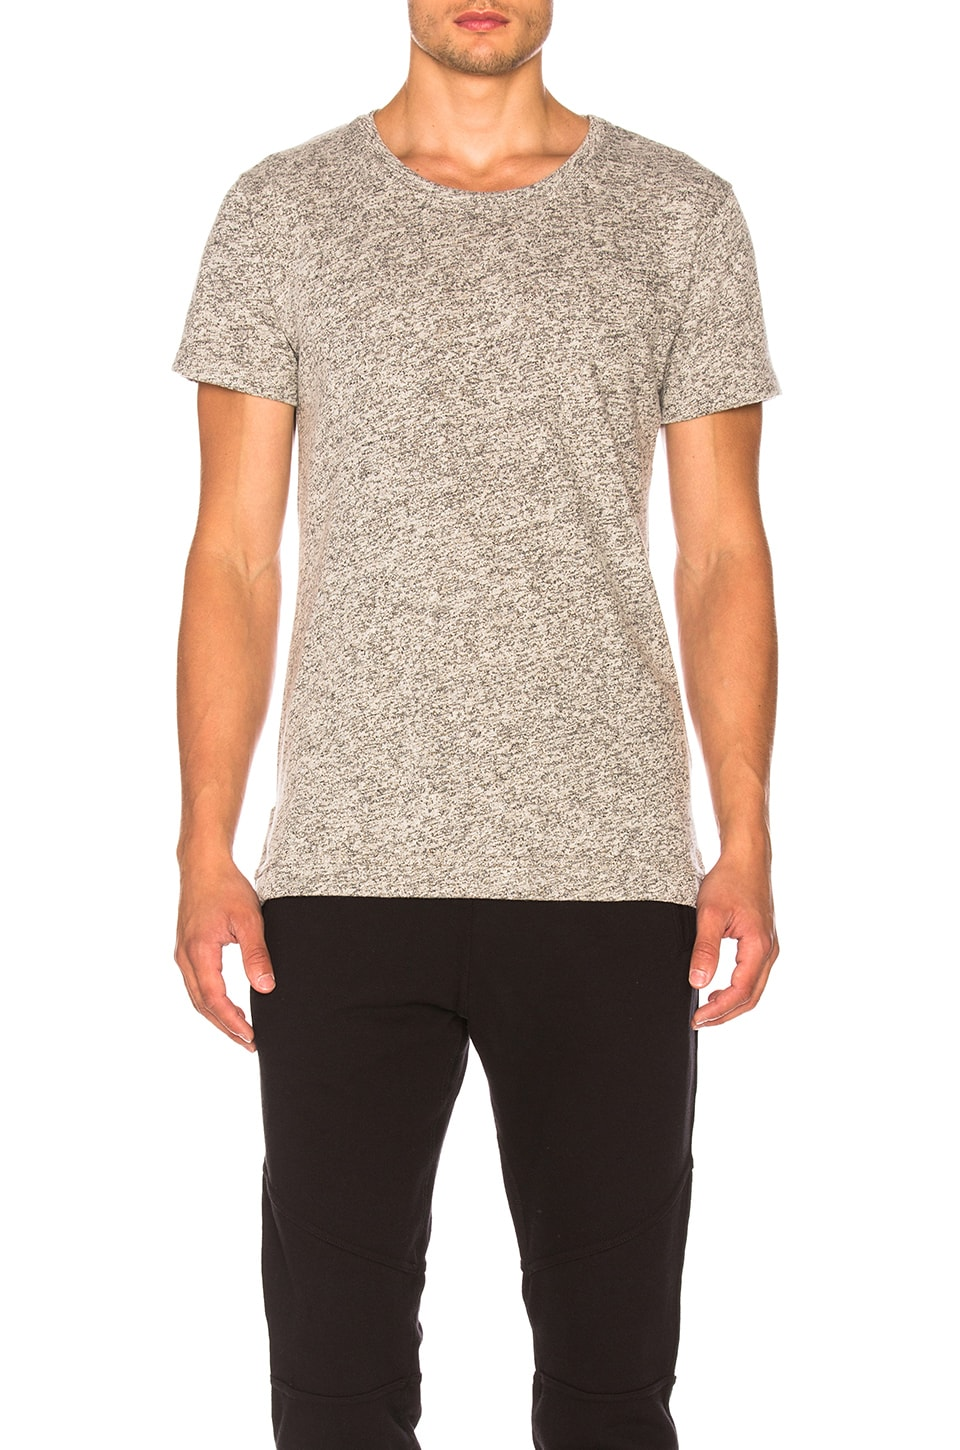 JOHN ELLIOTT Mercer Tee in Co-Mix Grey